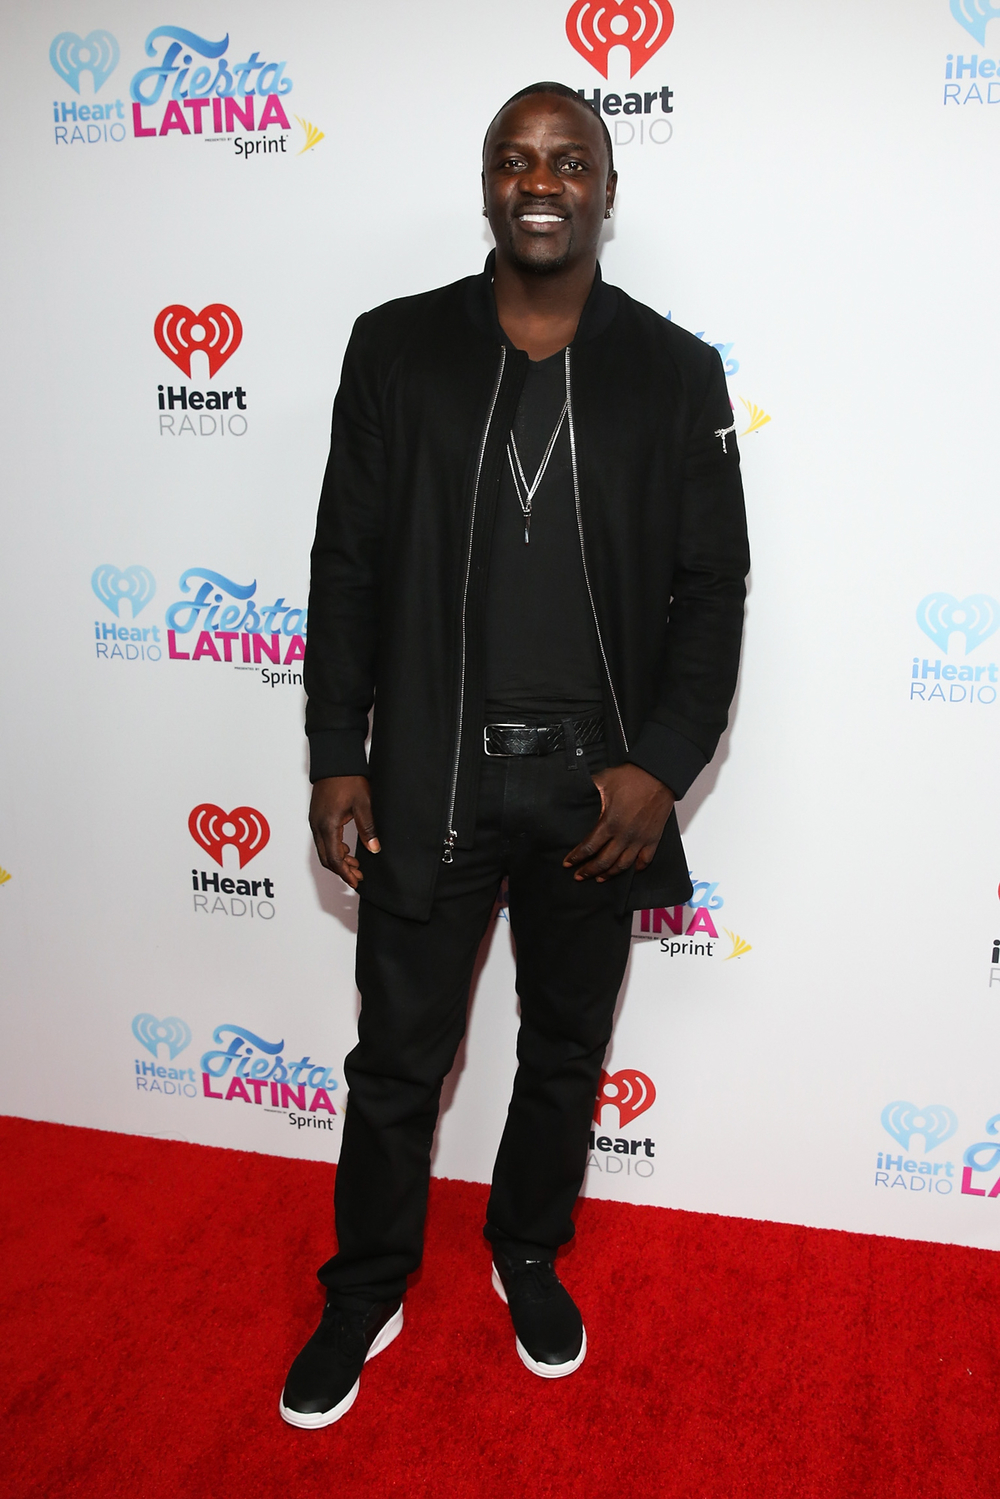 MIAMI, FL - NOVEMBER 07:  Singer Akon attends iHeartRadio Fiesta Latina presented by Sprint at American Airlines Arena on November 7, 2015 in Miami, Florida.  (Photo by Aaron Davidson/Getty Images for iHeartMedia) *** Local Caption *** Akon